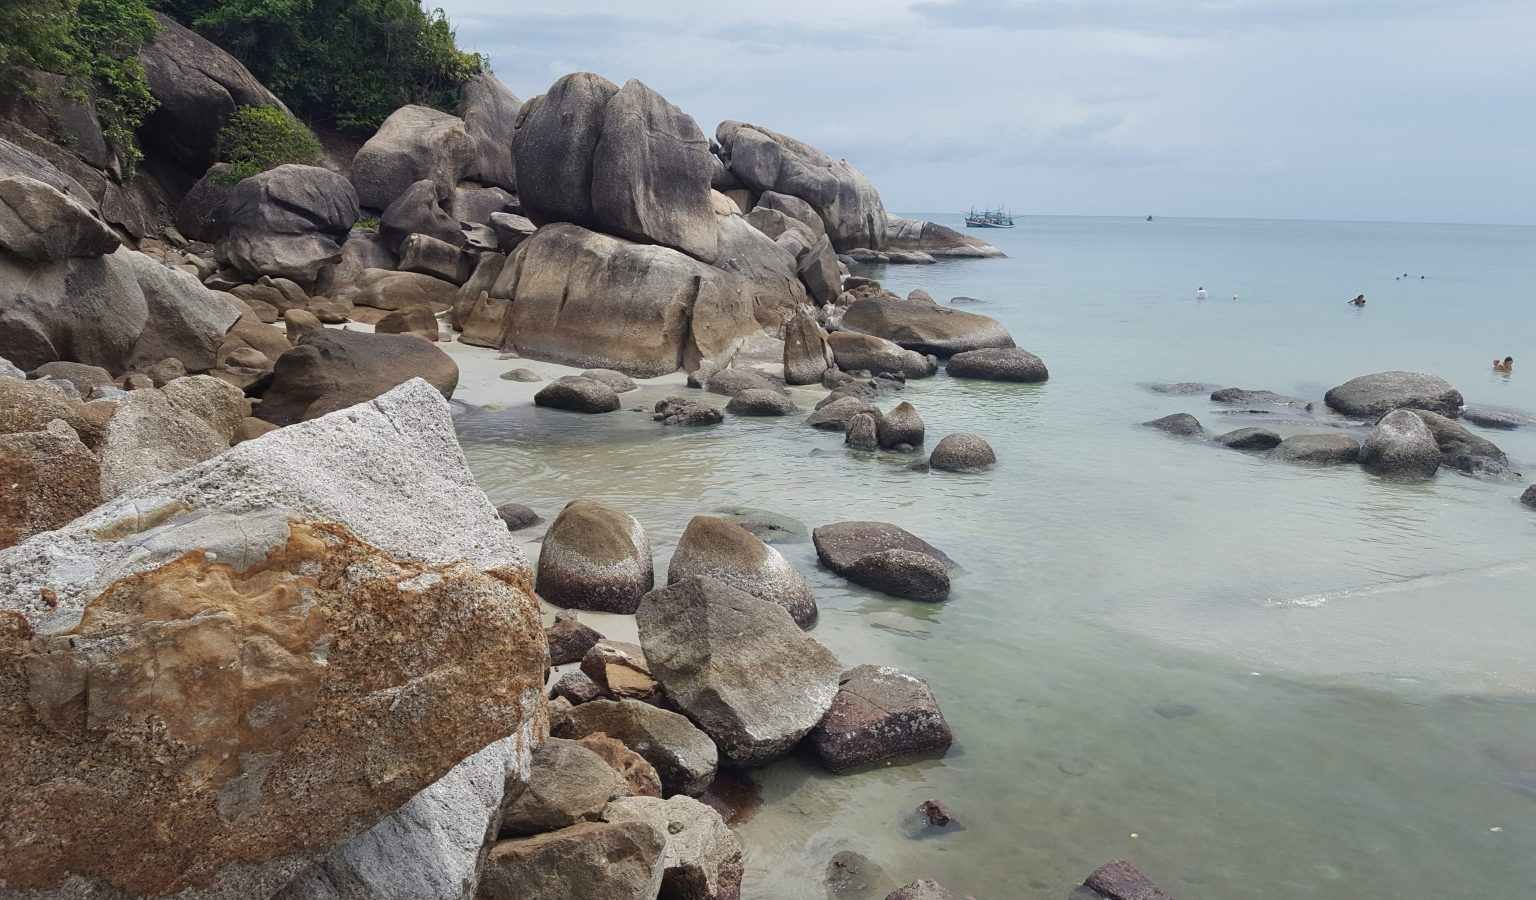 Rocks in the shallow water in the bay of Crystal Beach on Koh Samui